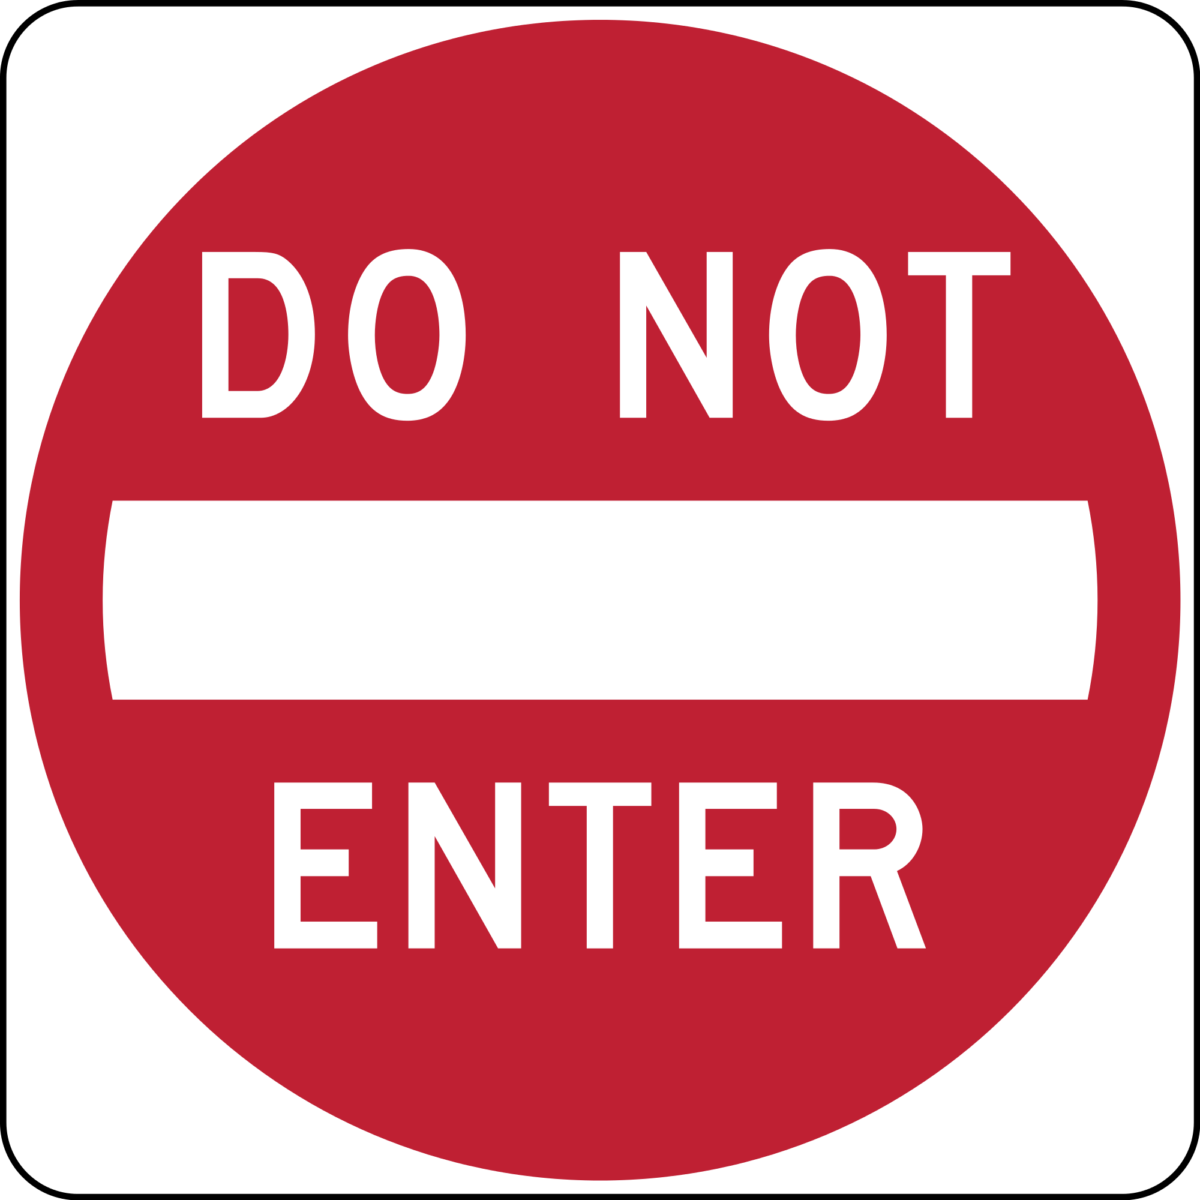 do_not_enter.wikipedia